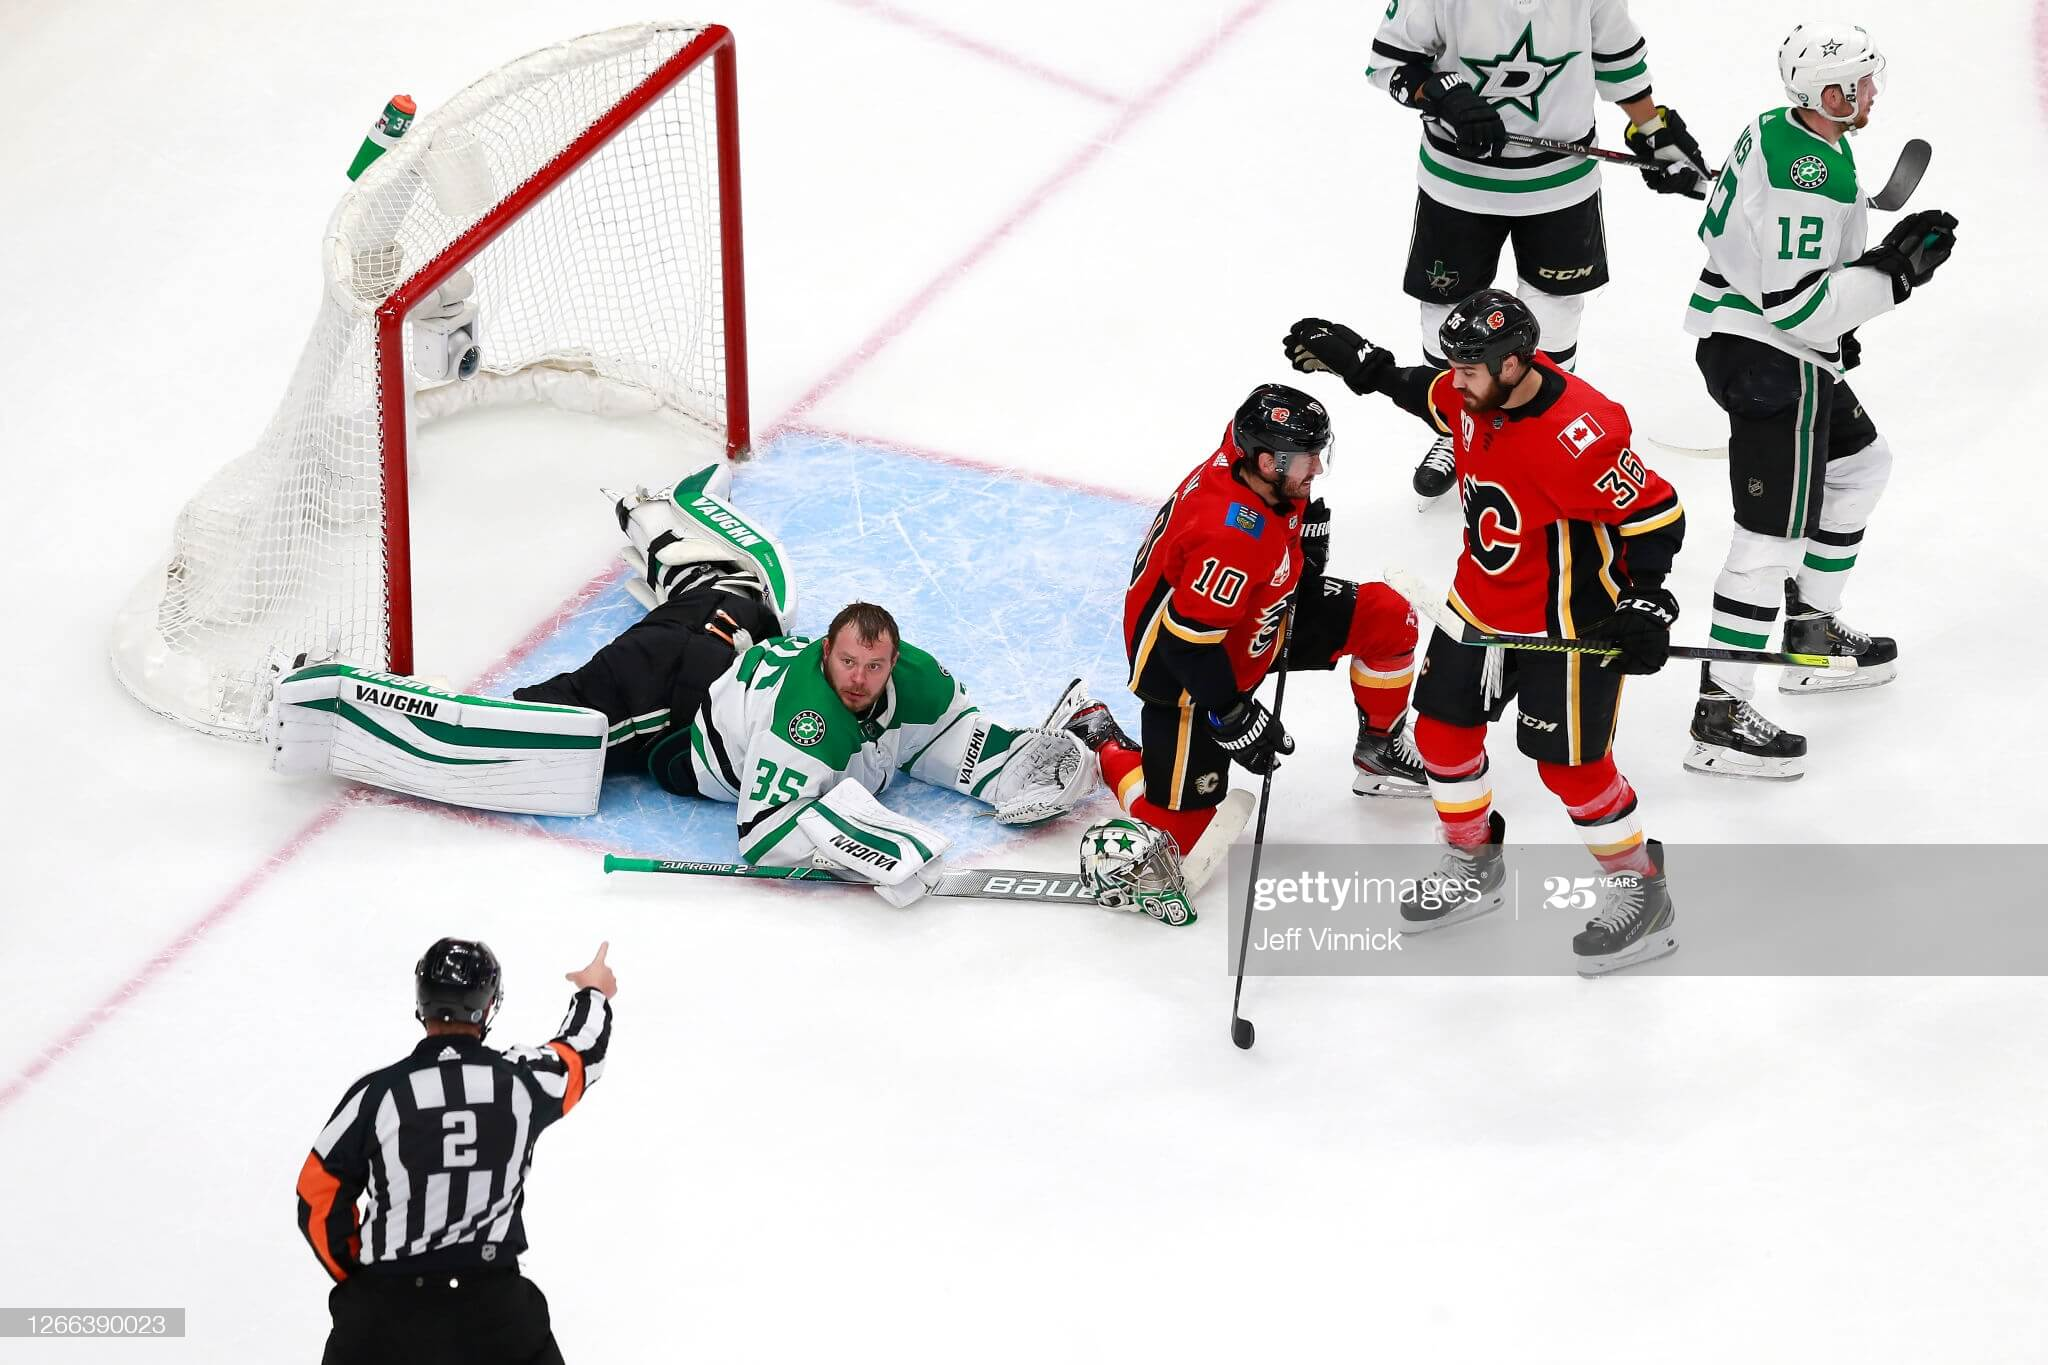 Anton Khudobin's Getty Images Page is a Work of Art